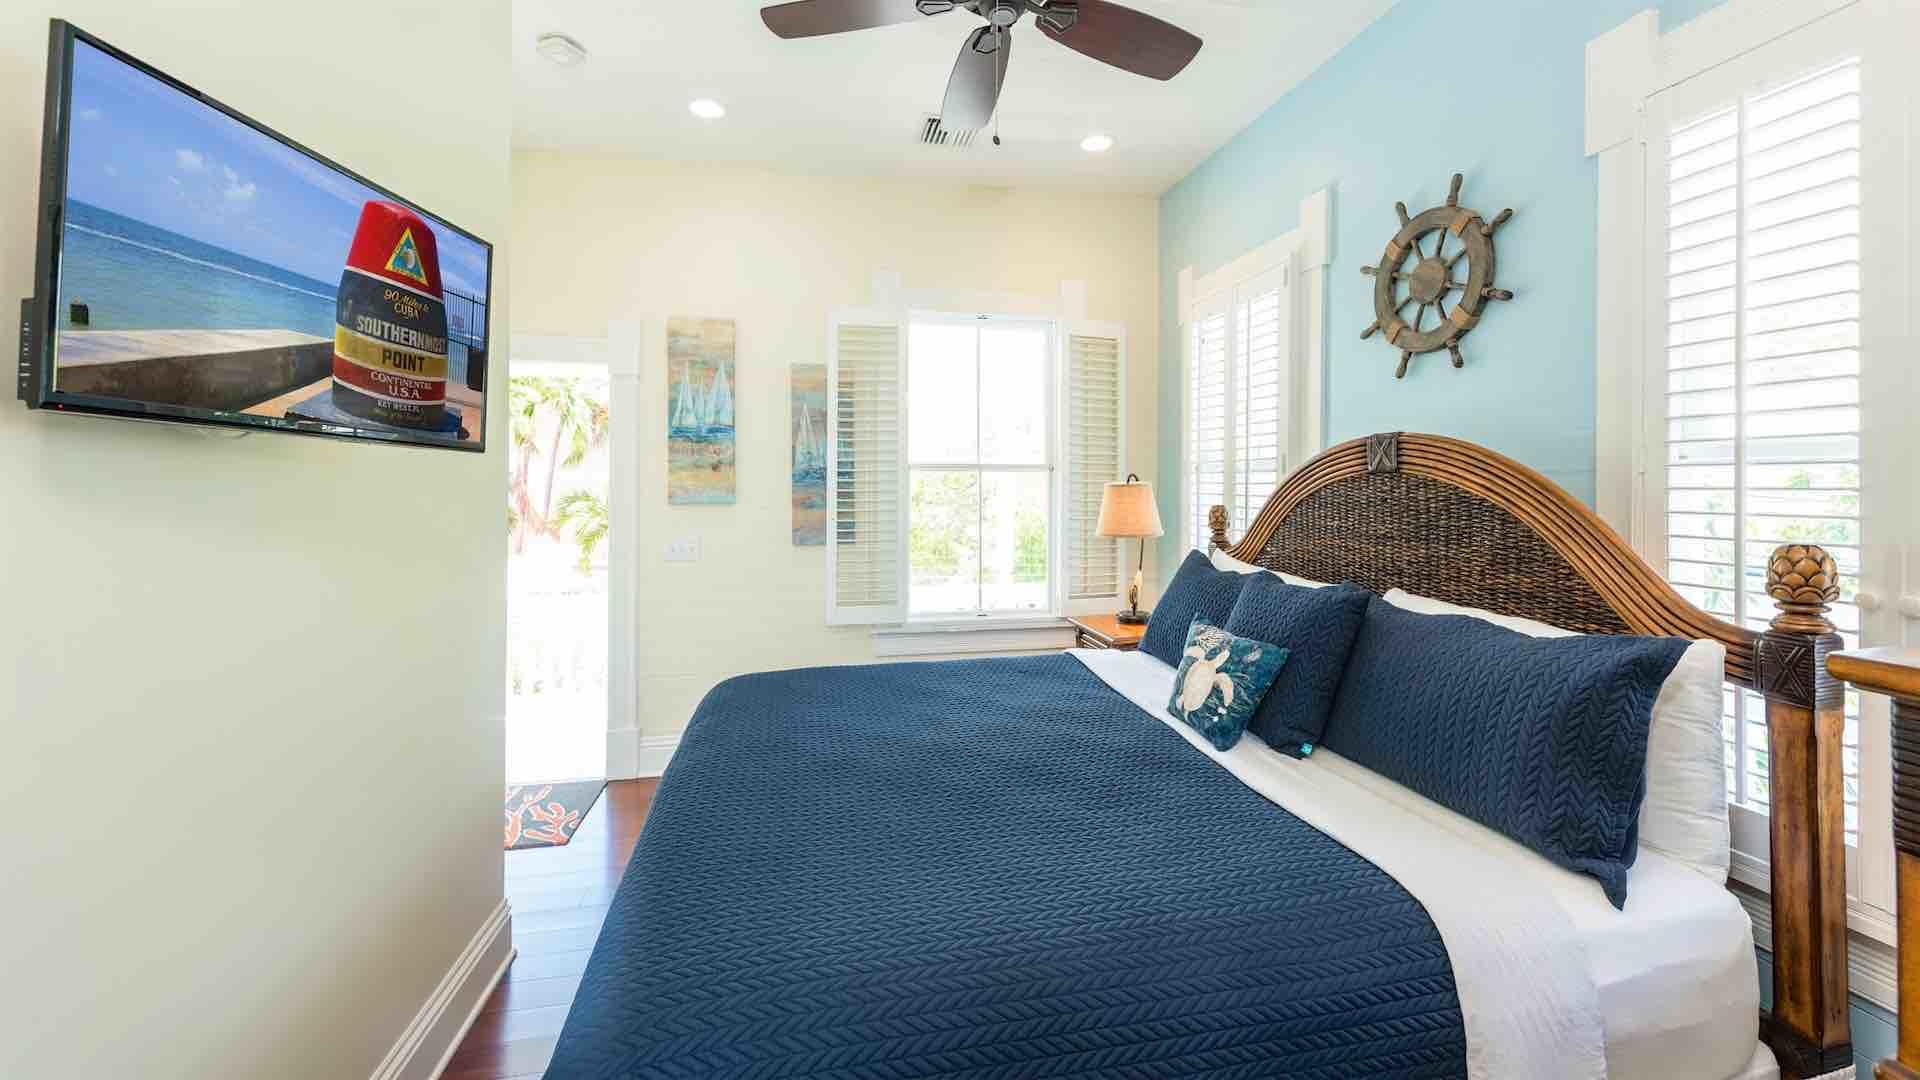 The third bedroom has a King bed, an overhead fan, and a flat screen TV...